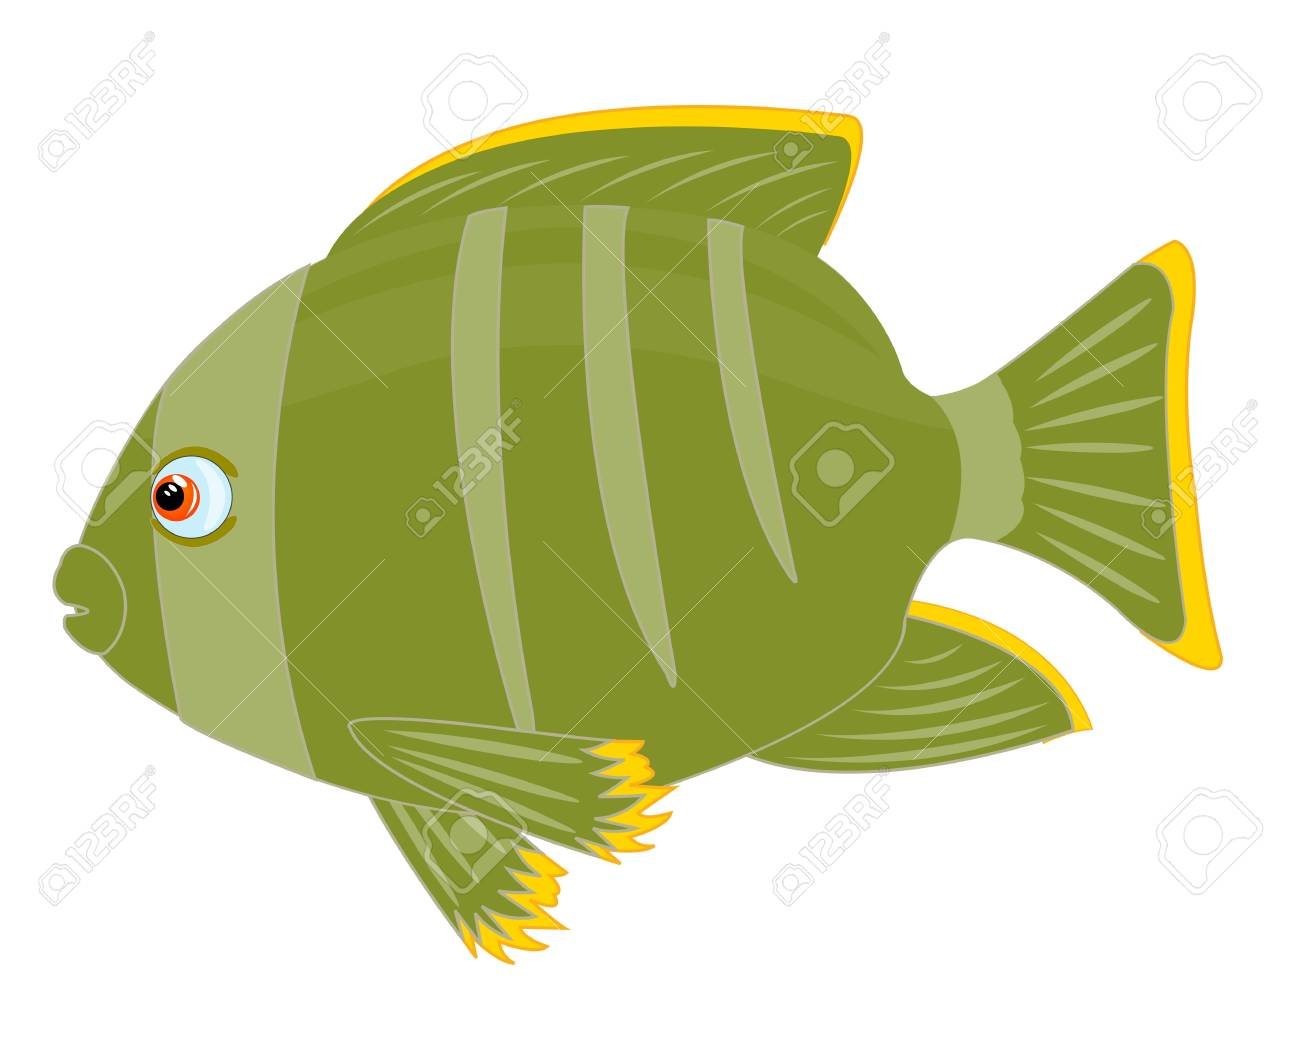 Illustration of tropical fish insulated on white background Stock Vector - 17010206